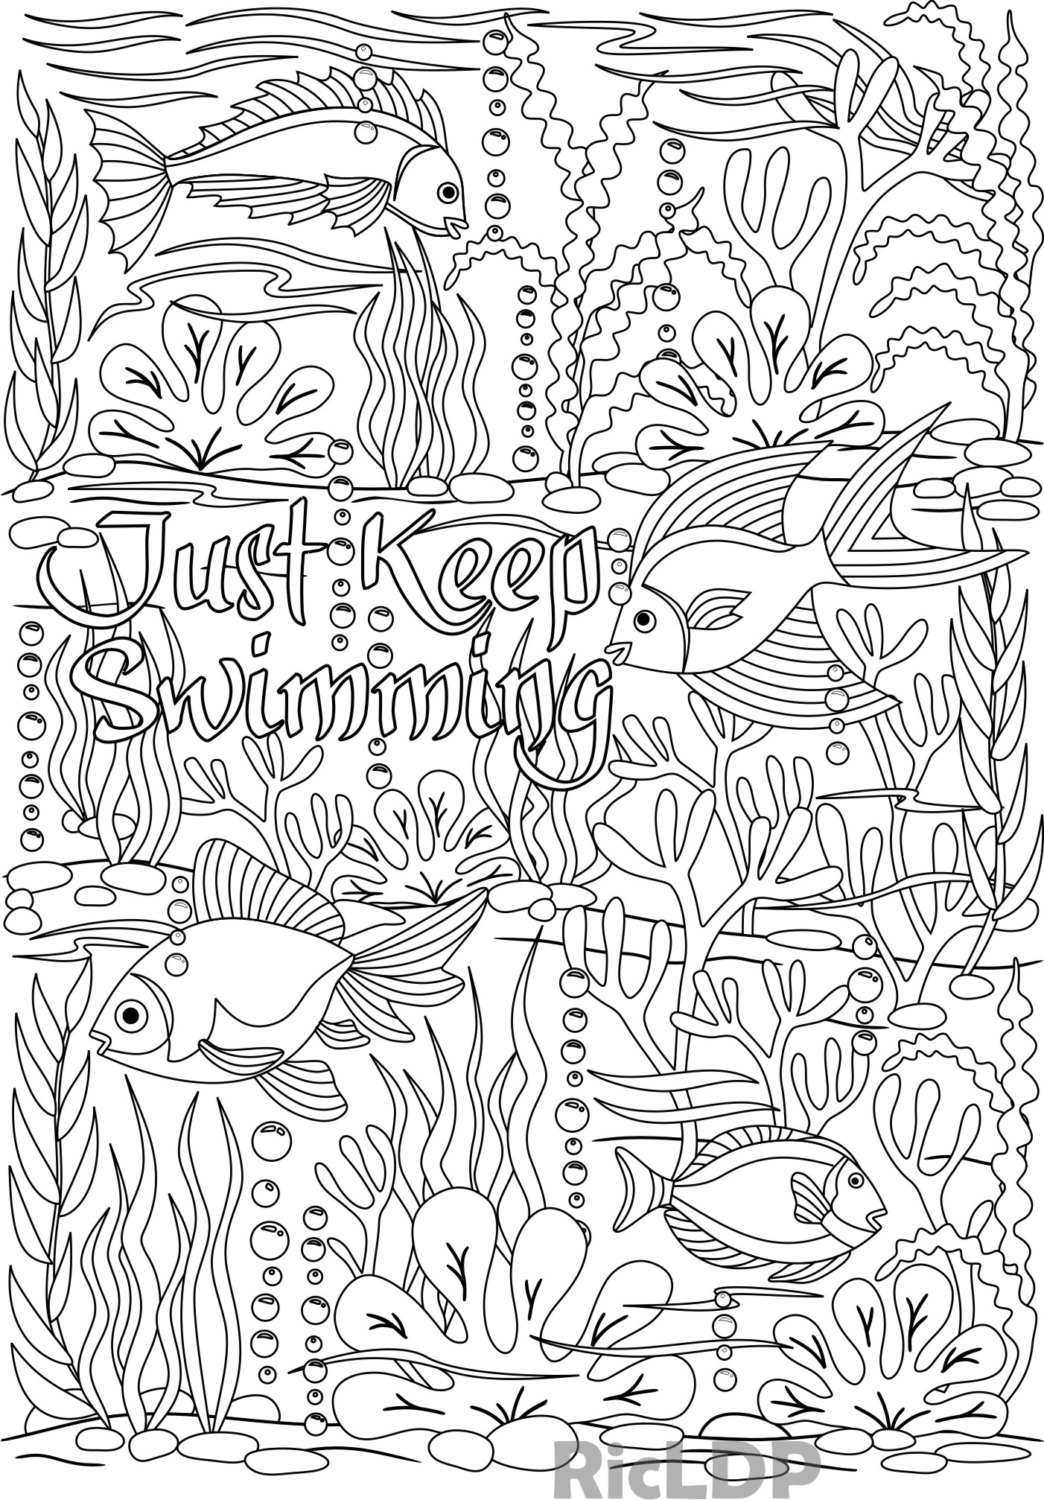 under the sea coloring pages pdf oceana adult coloring book twenty creative and stress under pages pdf coloring sea the